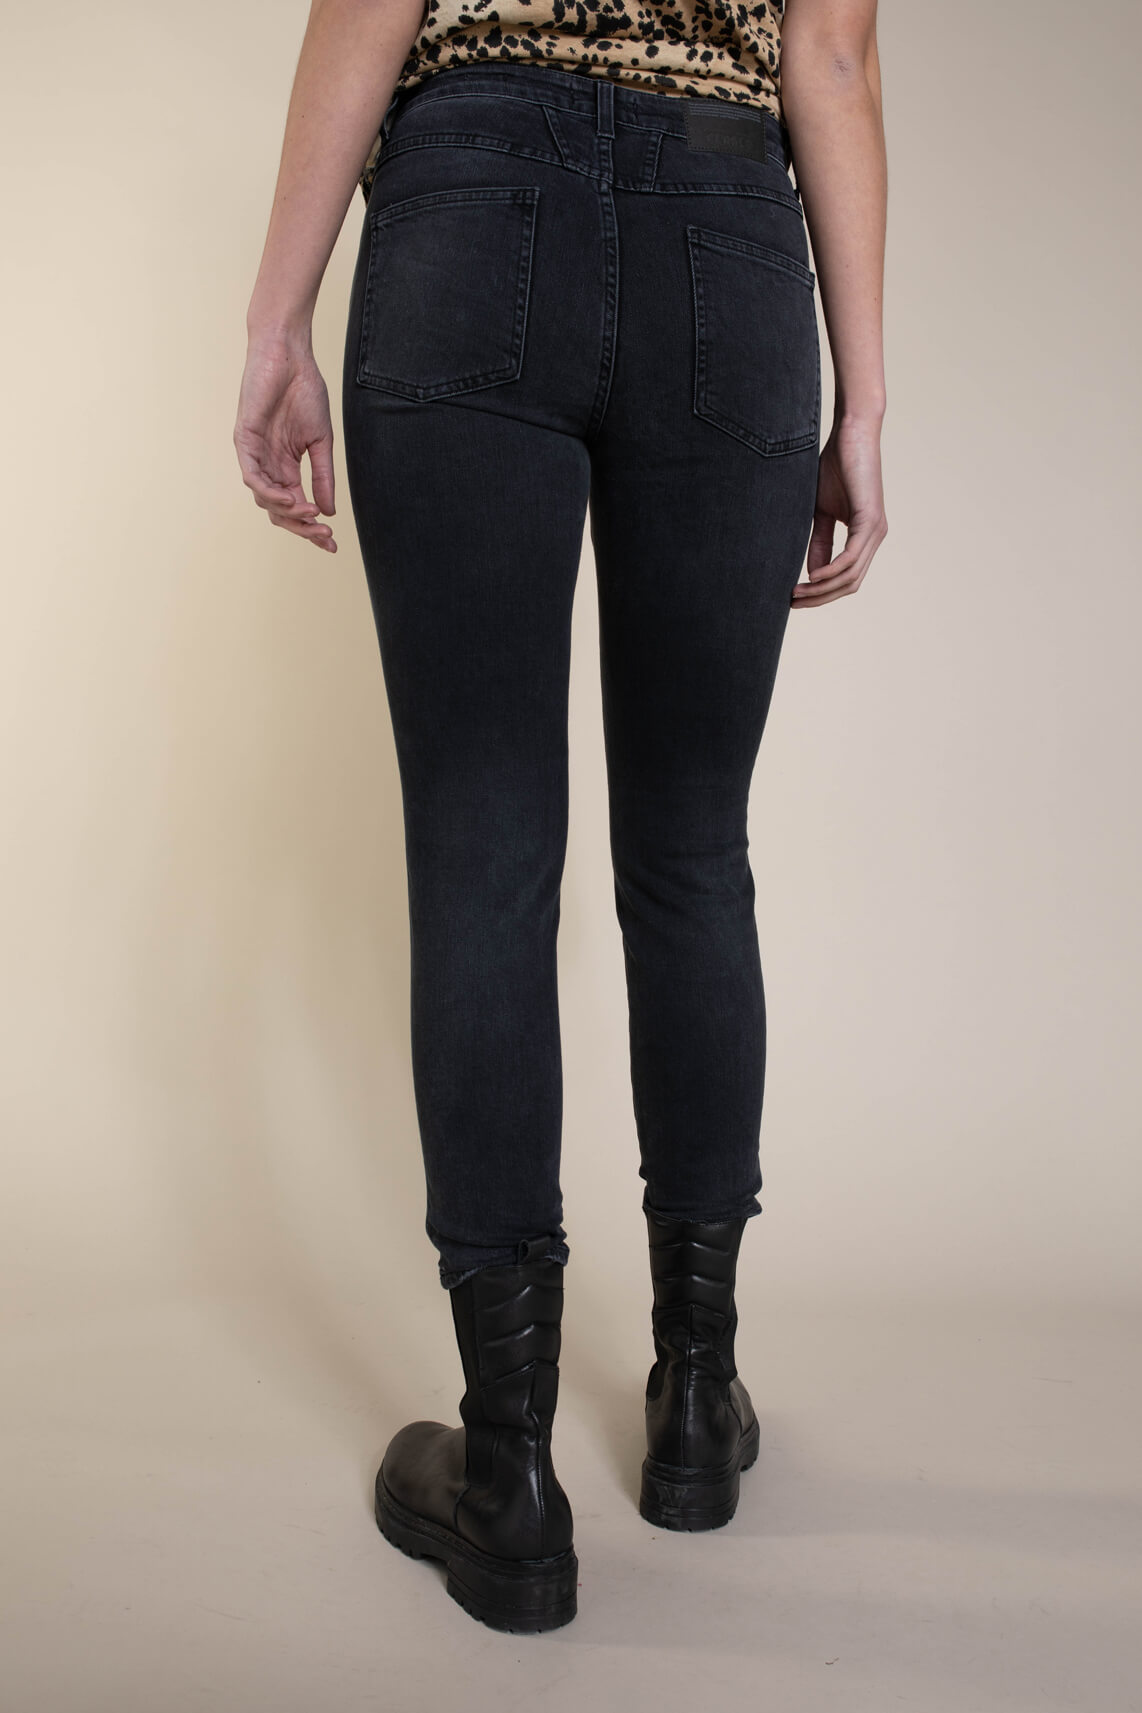 Closed Dames Jeans skinny Grijs